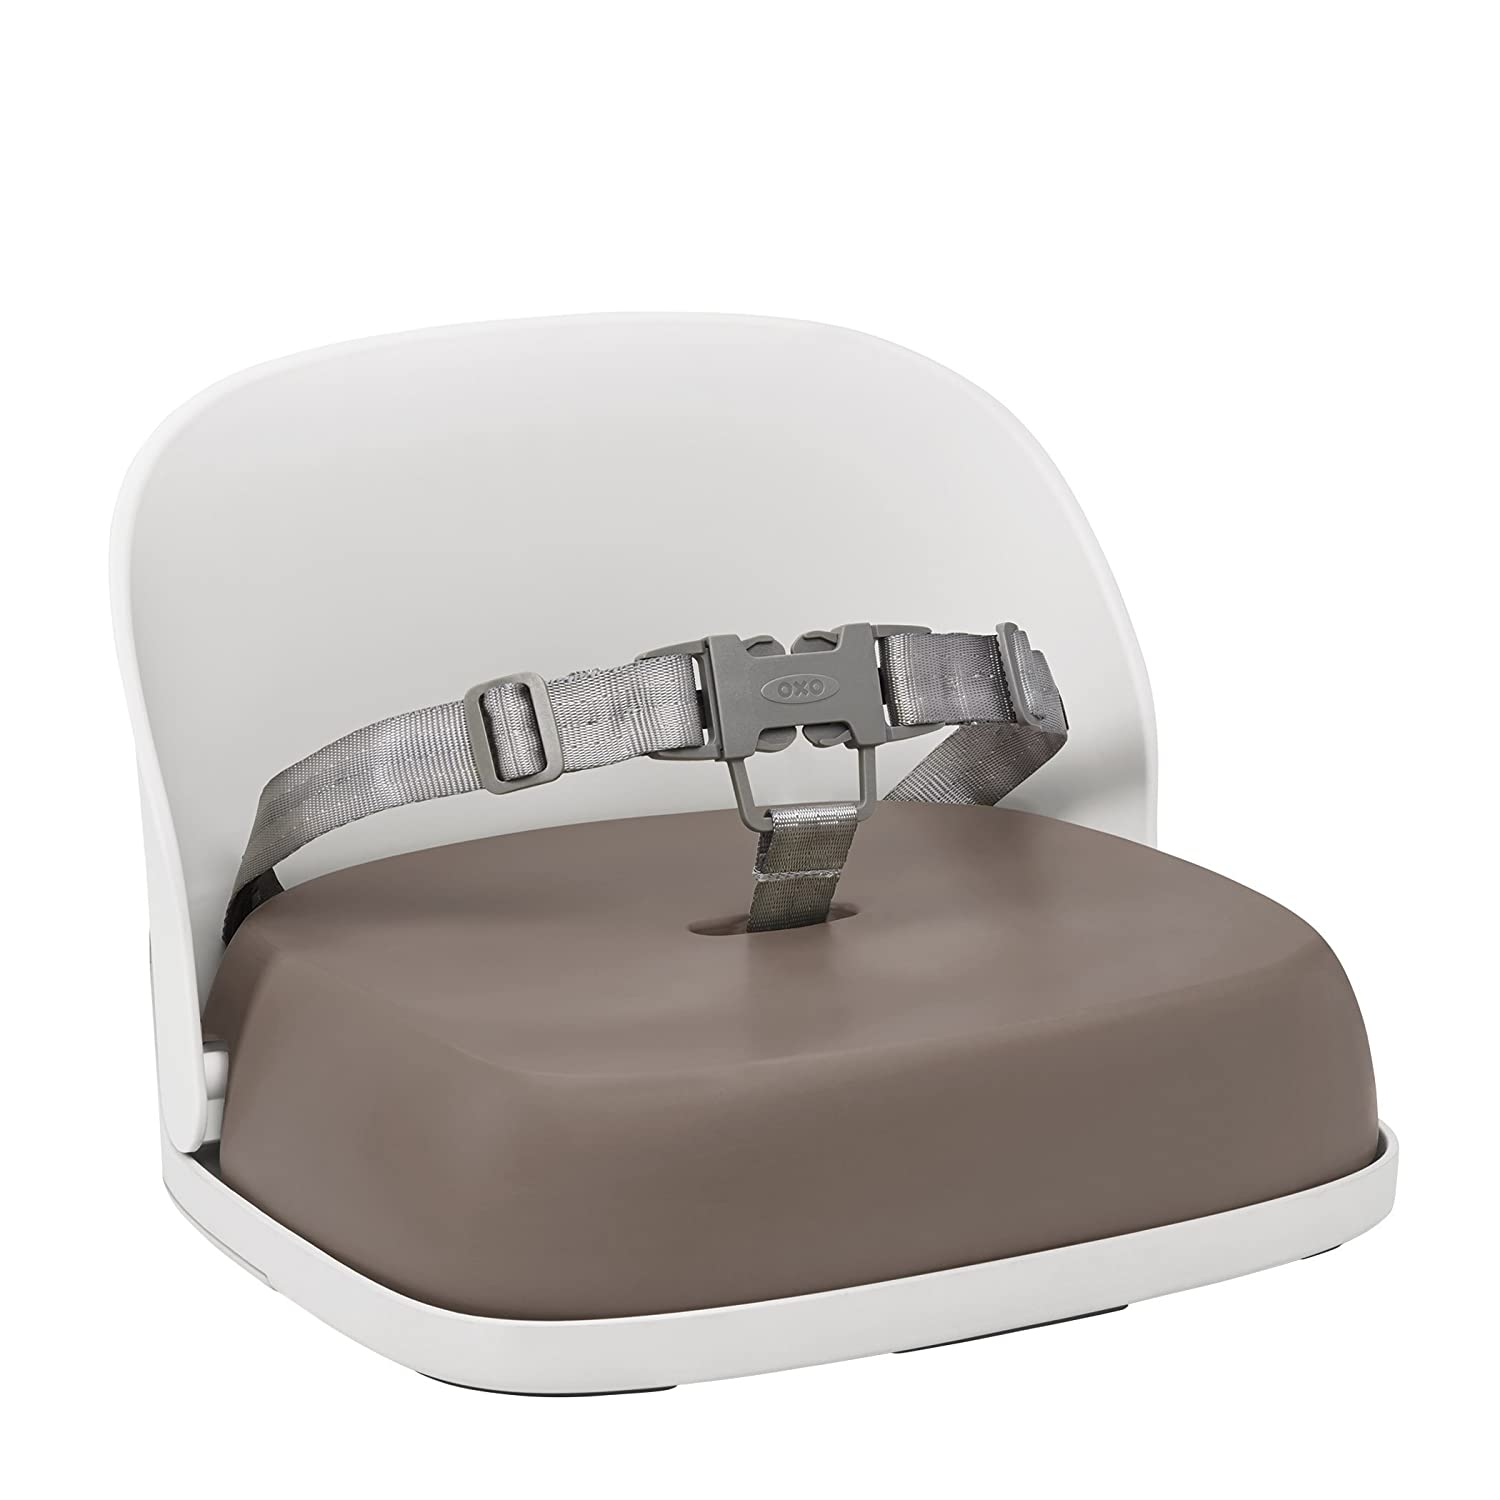 Oxo Tot Perch Booster Seat with Straps, Taupe 6366800